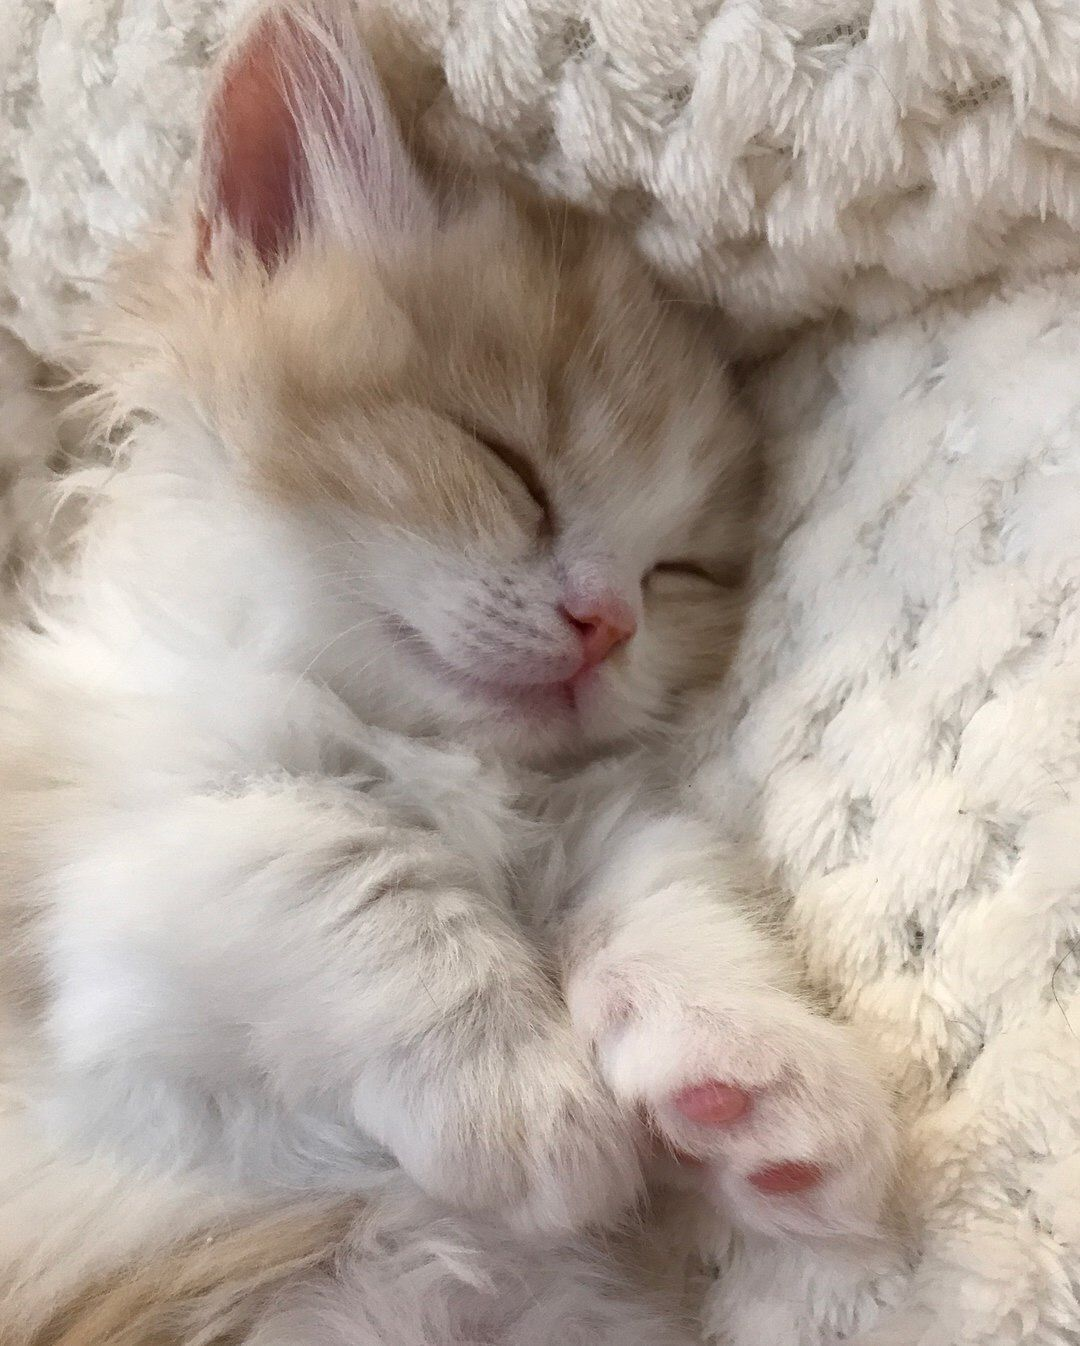 Pin By Lauren Hale On Kitties Kittens Cutest Cute Baby Animals Cats And Kittens